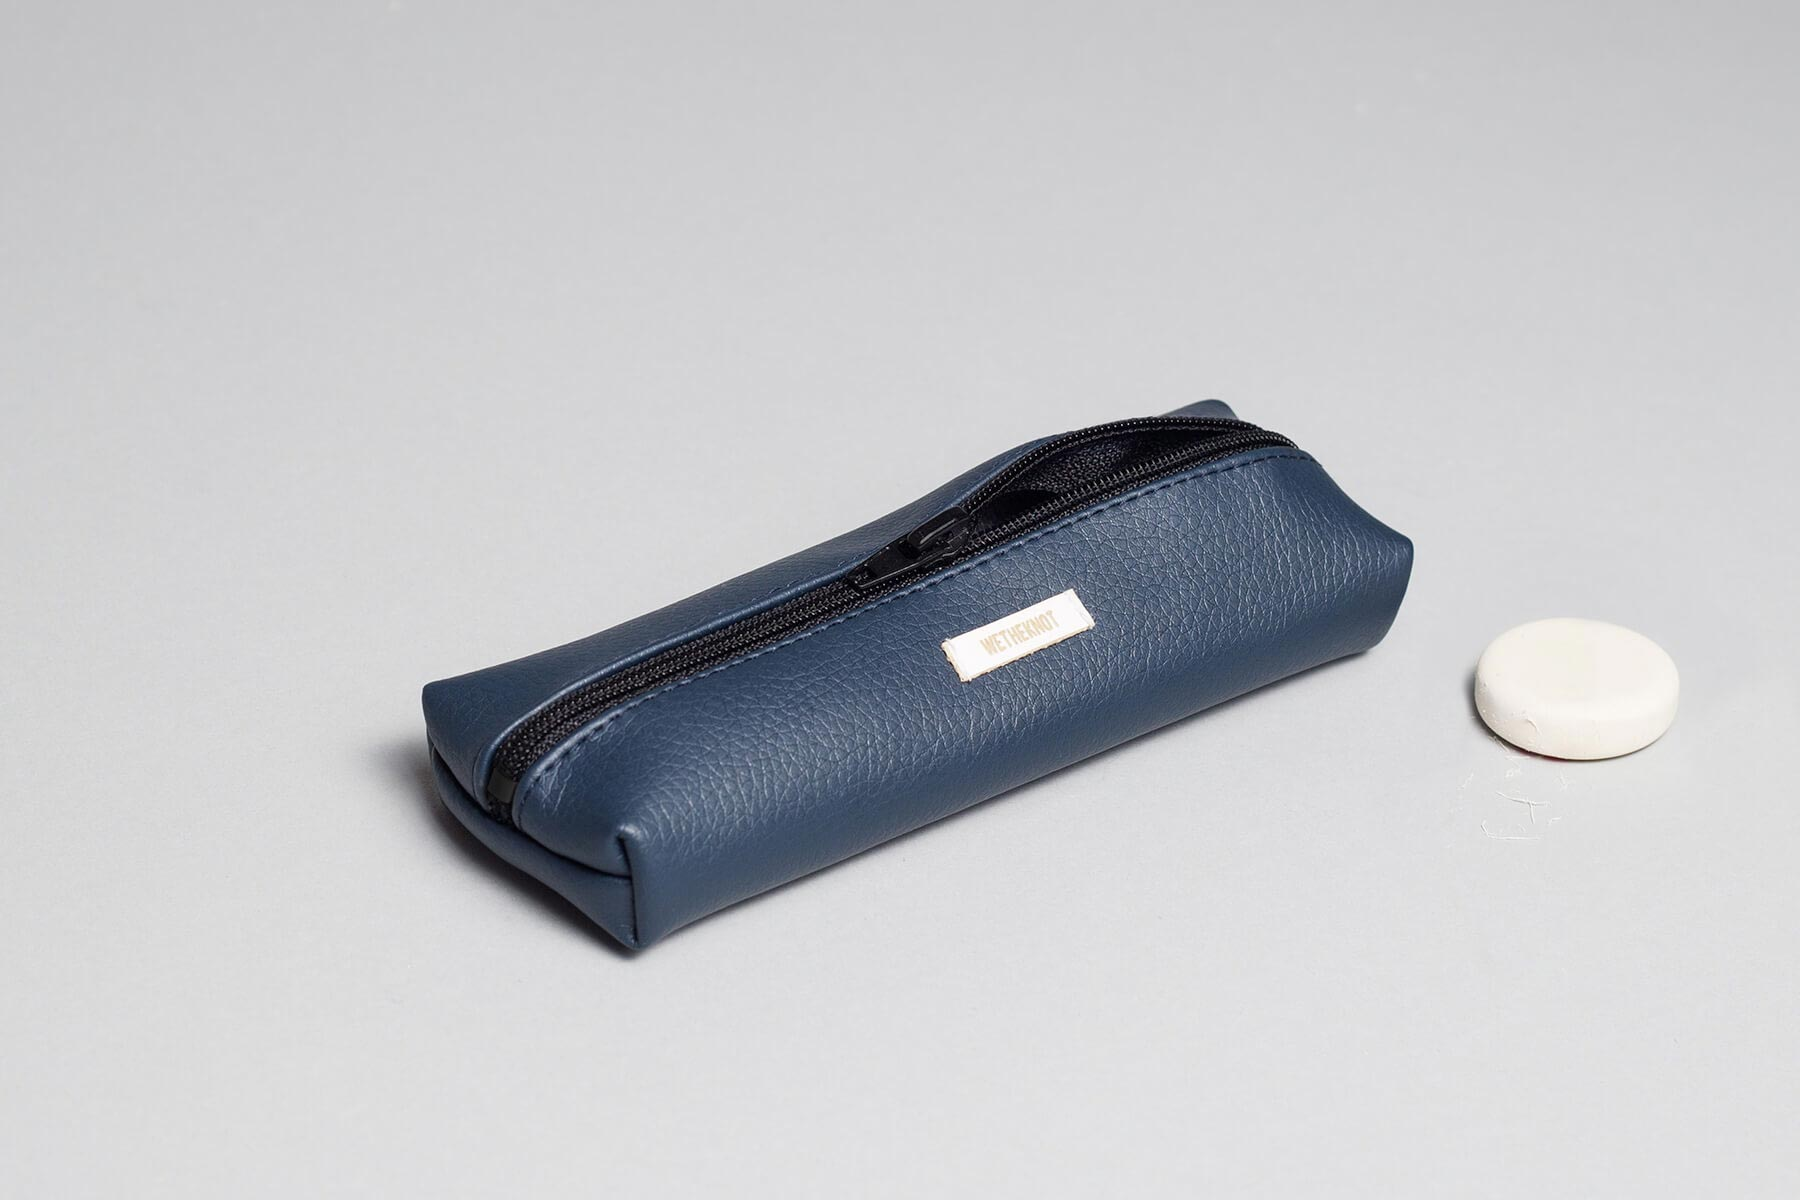 Vegan leather pencil case in dark blue